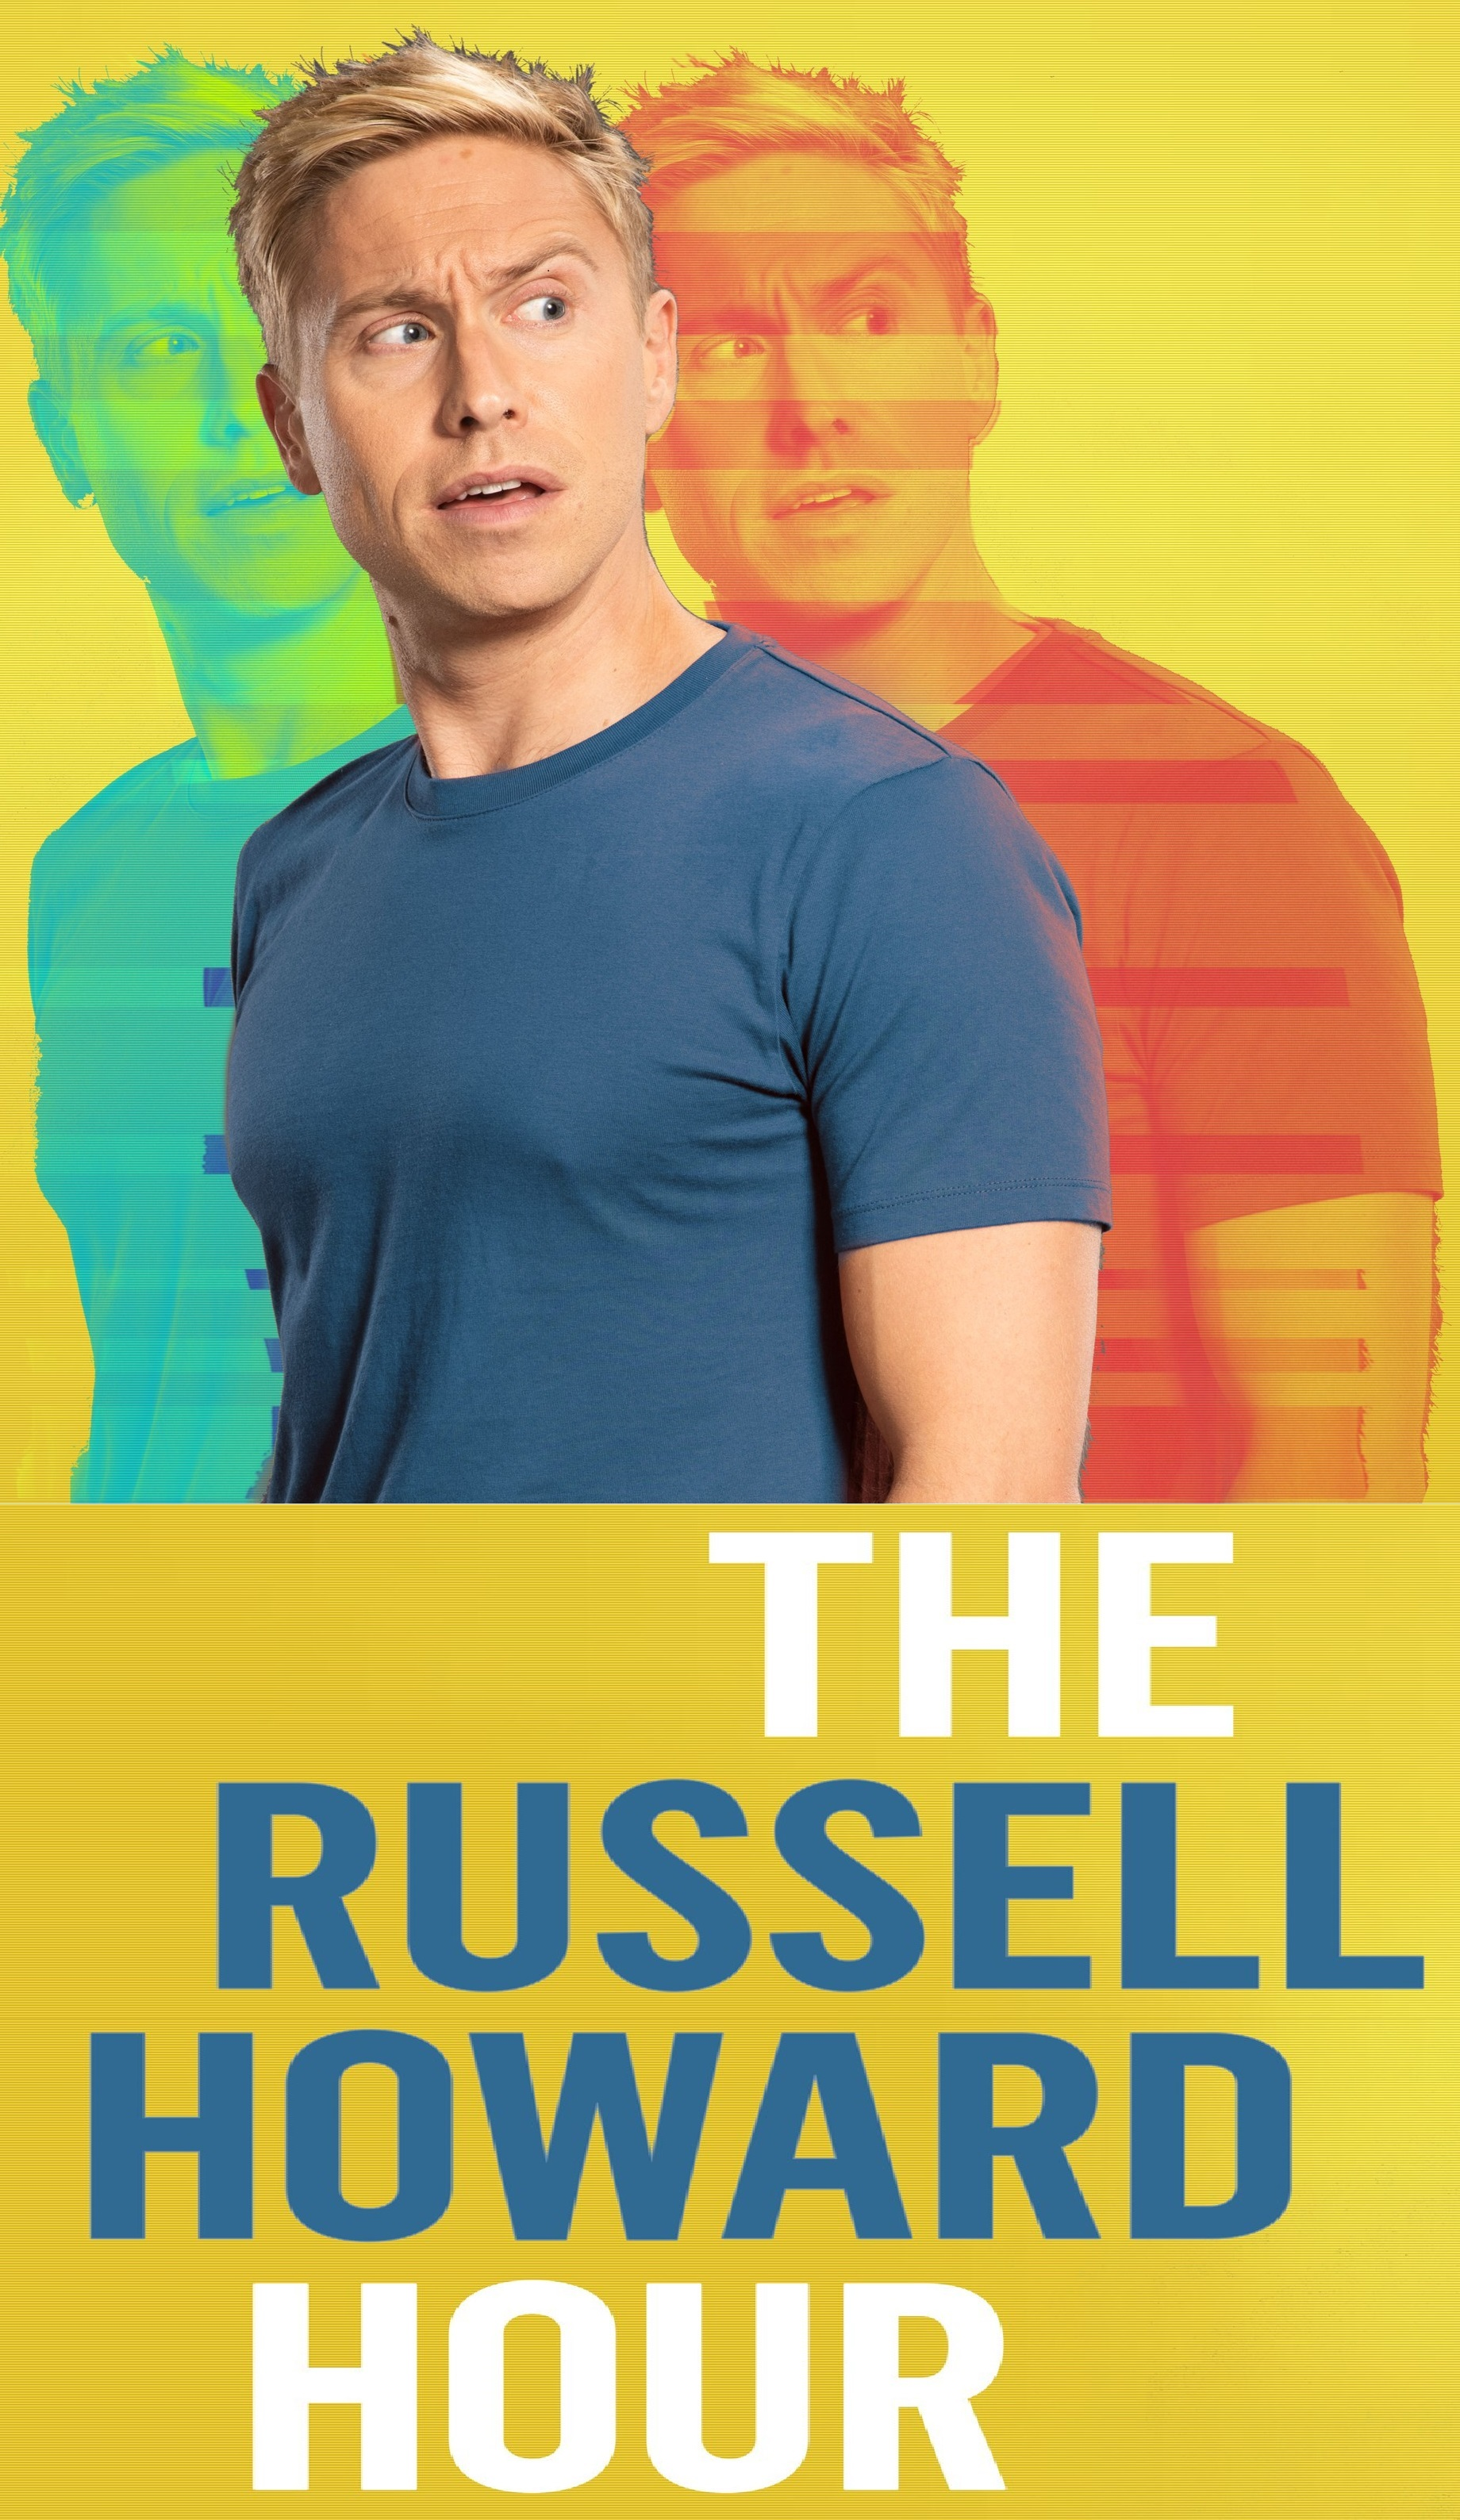 The Russell Howard Hour Season 4 123Movies